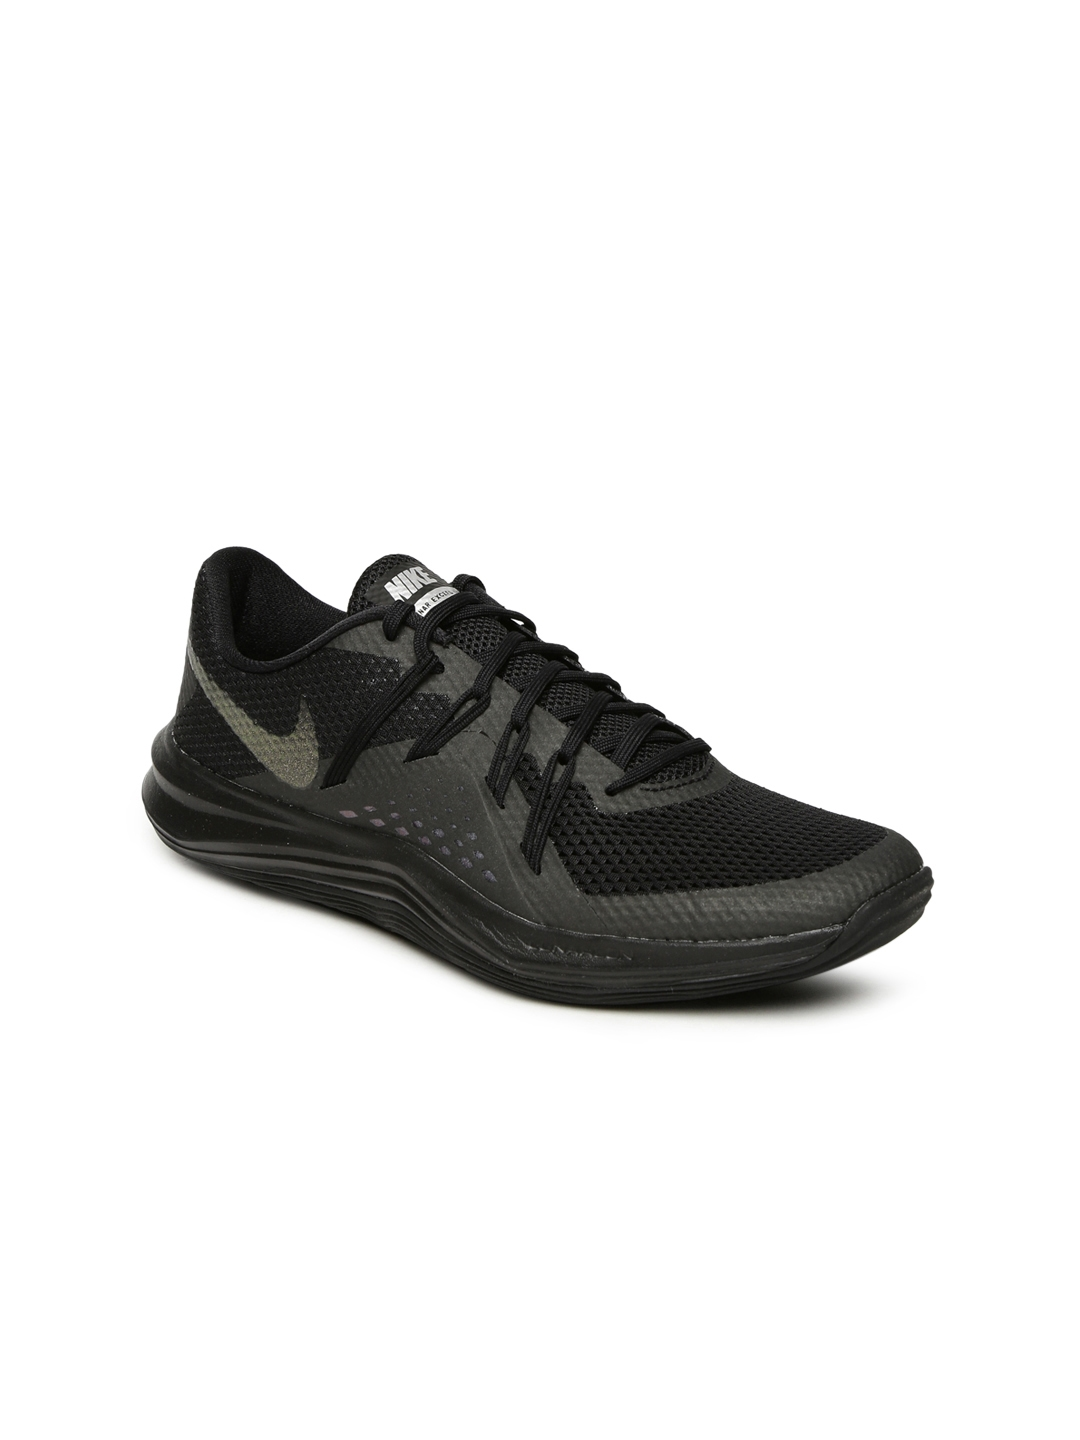 fbf907846944d 11507698186369-Nike -Women-Charcoal-Training-or-Gym-Shoes-7251507698186225-1.jpg